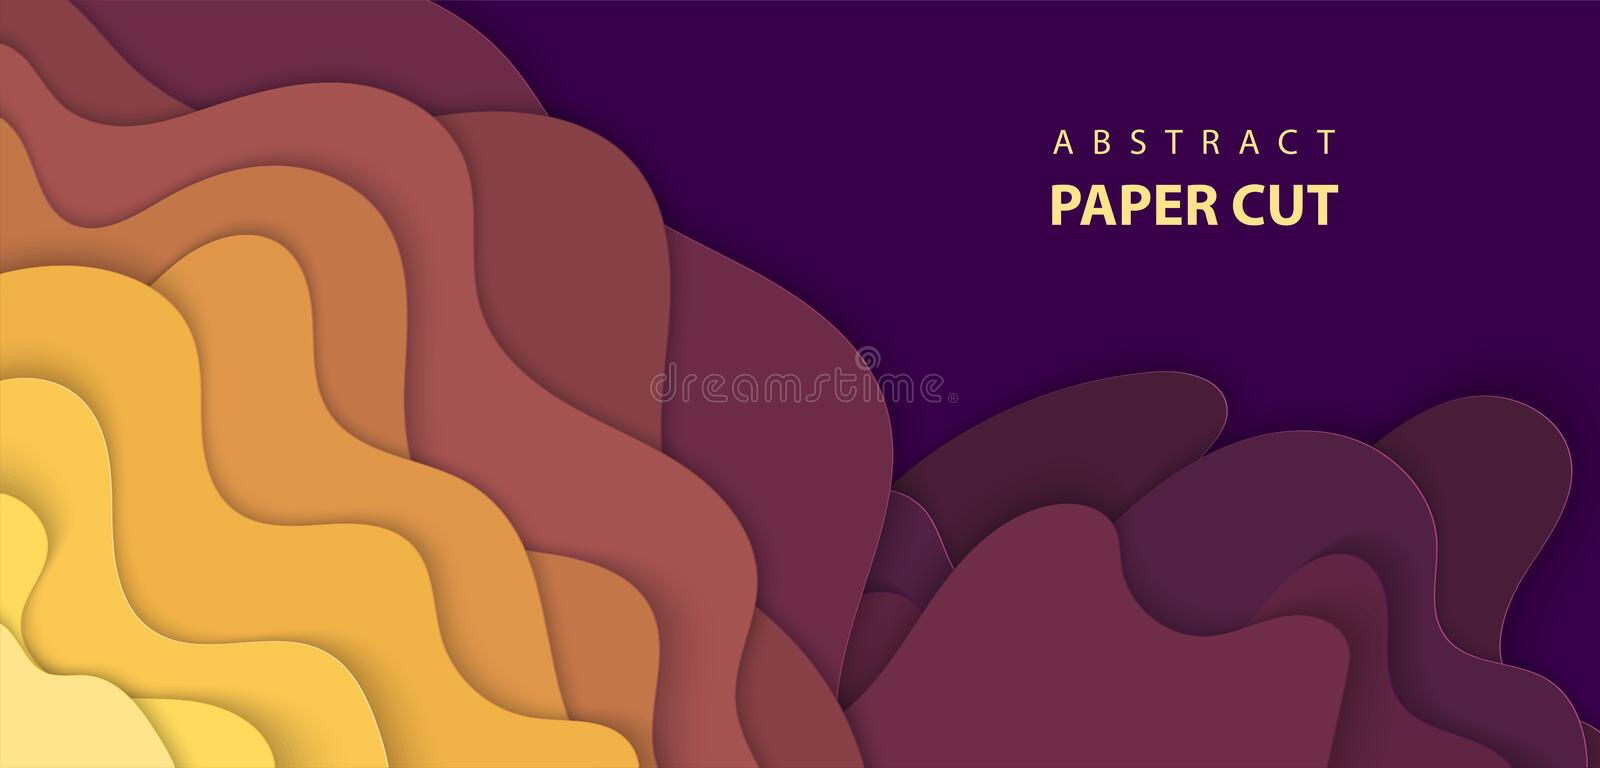 Vector background with multicolor paper cut shapes. 3D abstract. Paper art style, design layout for business presentations, flyers, posters, prints, decoration royalty free illustration